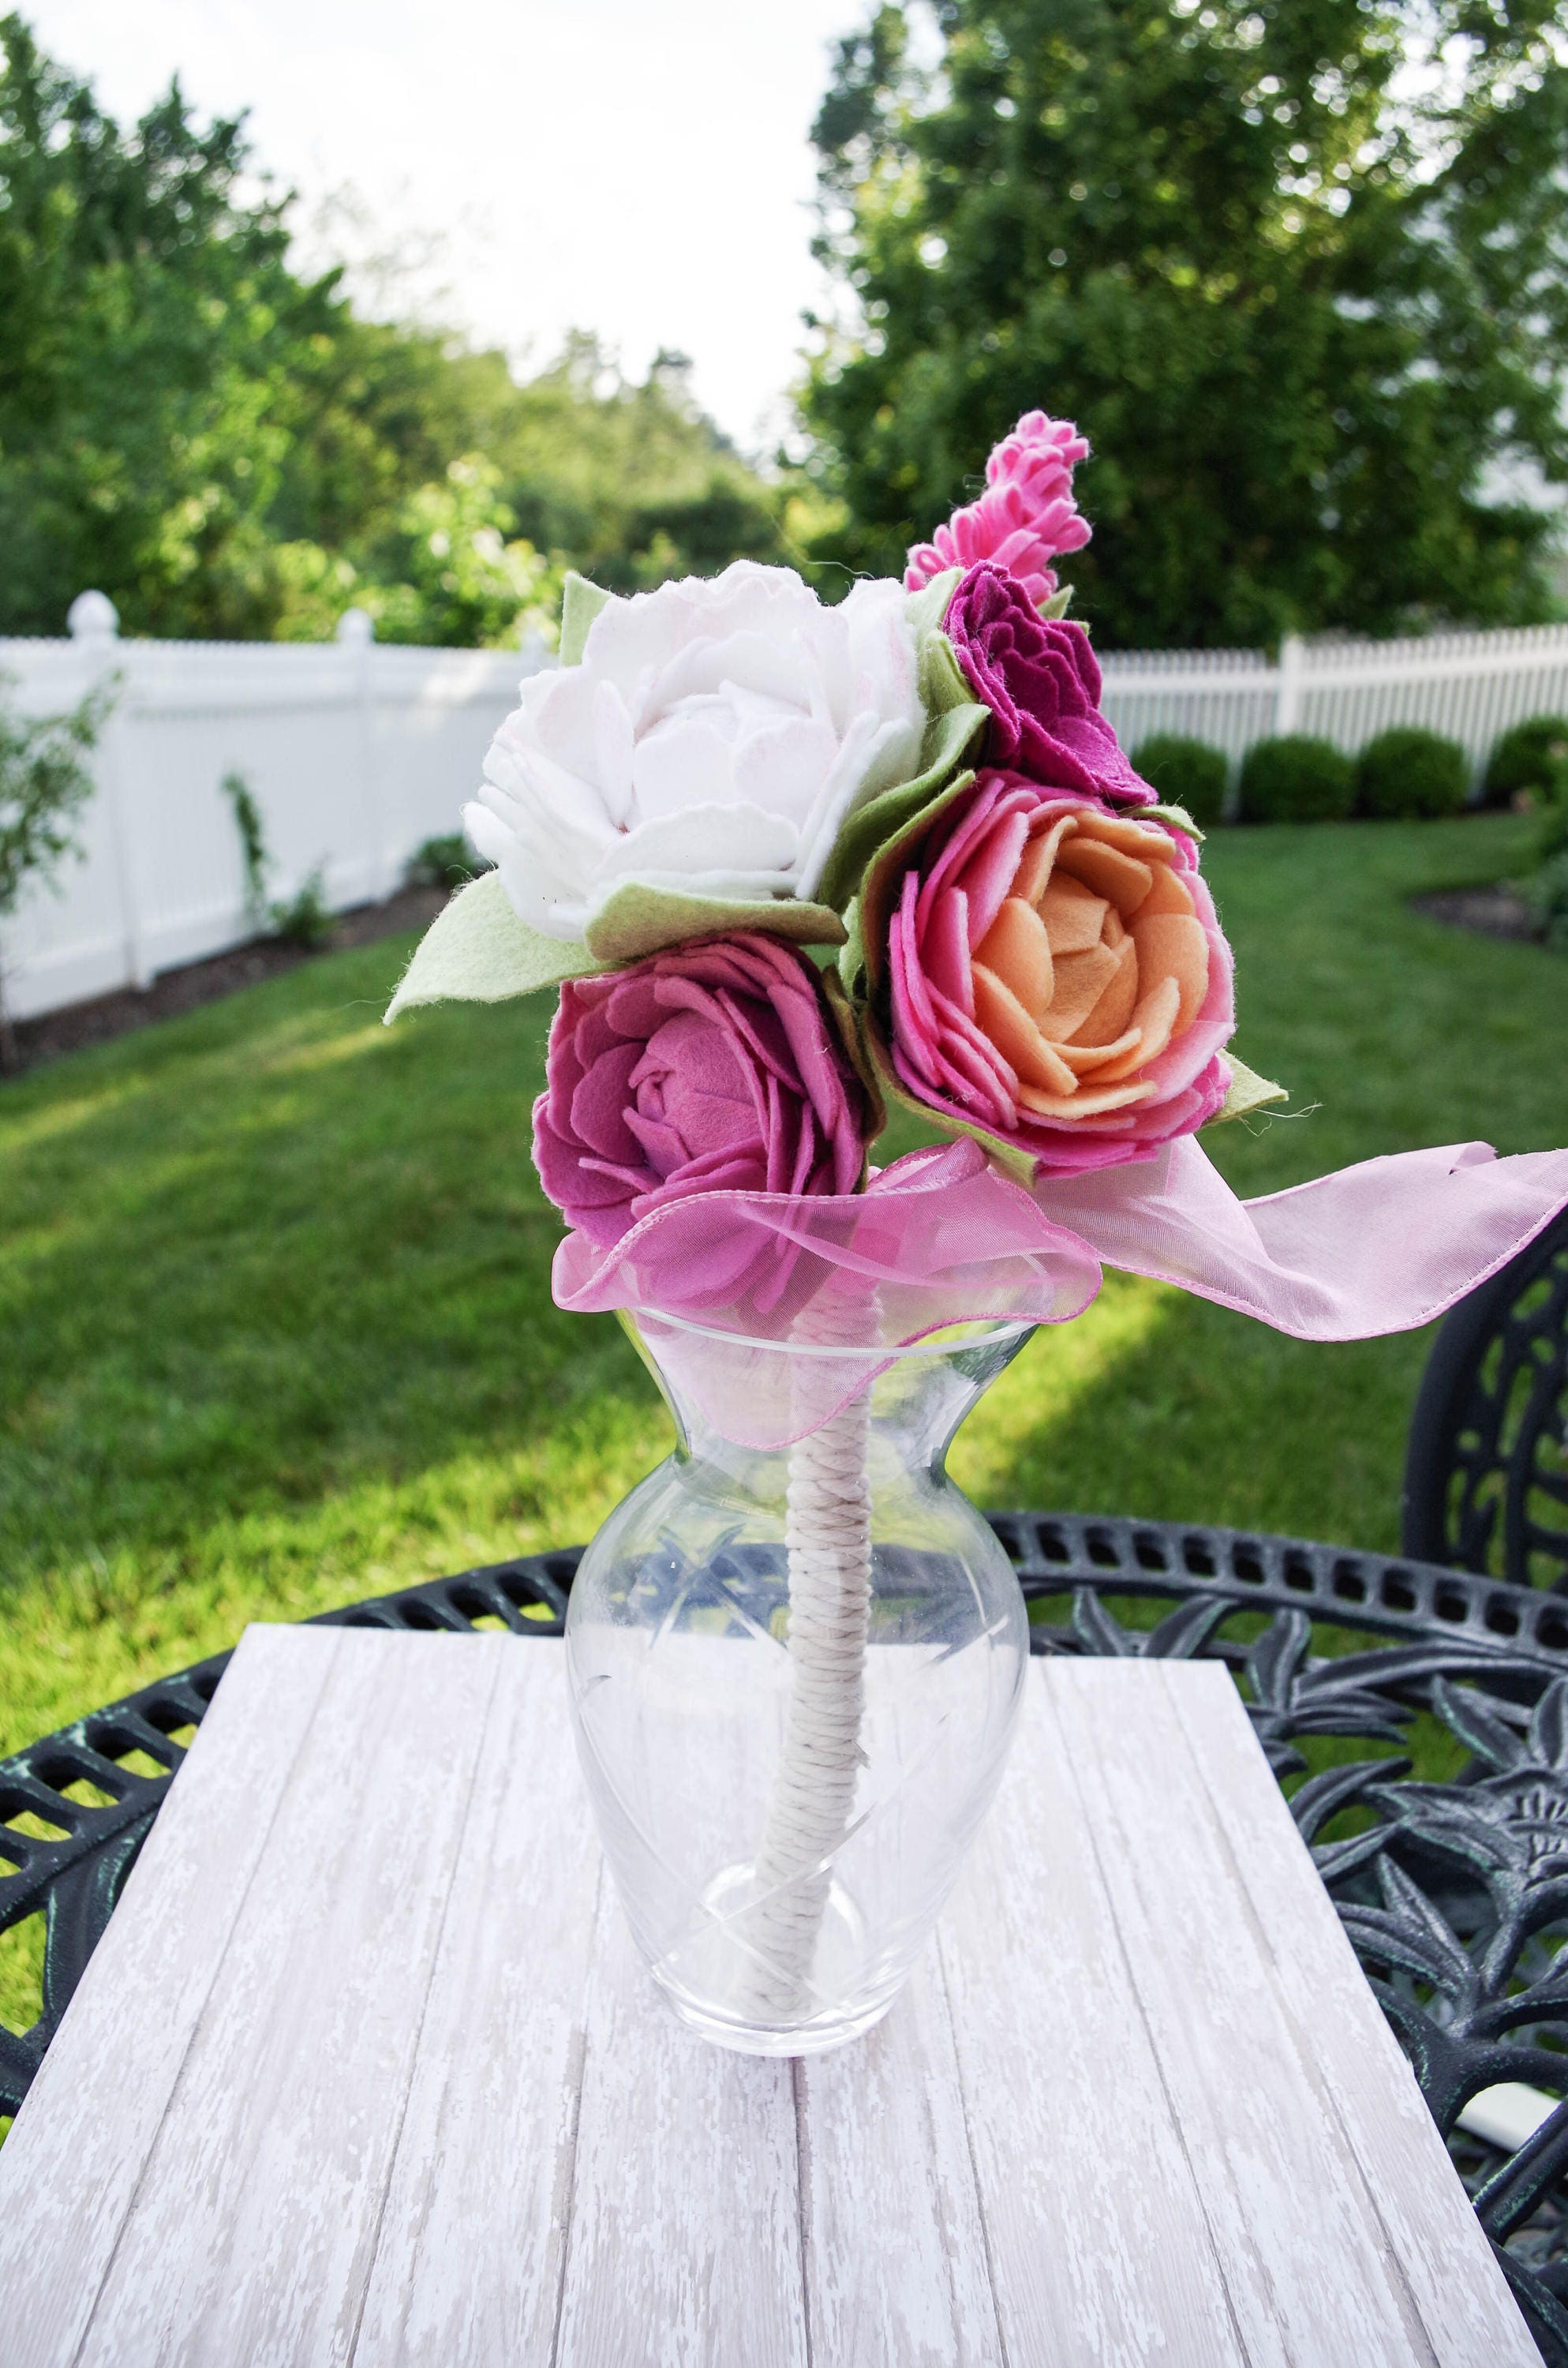 Inspirational Flower Bouquet Images for Anniversary